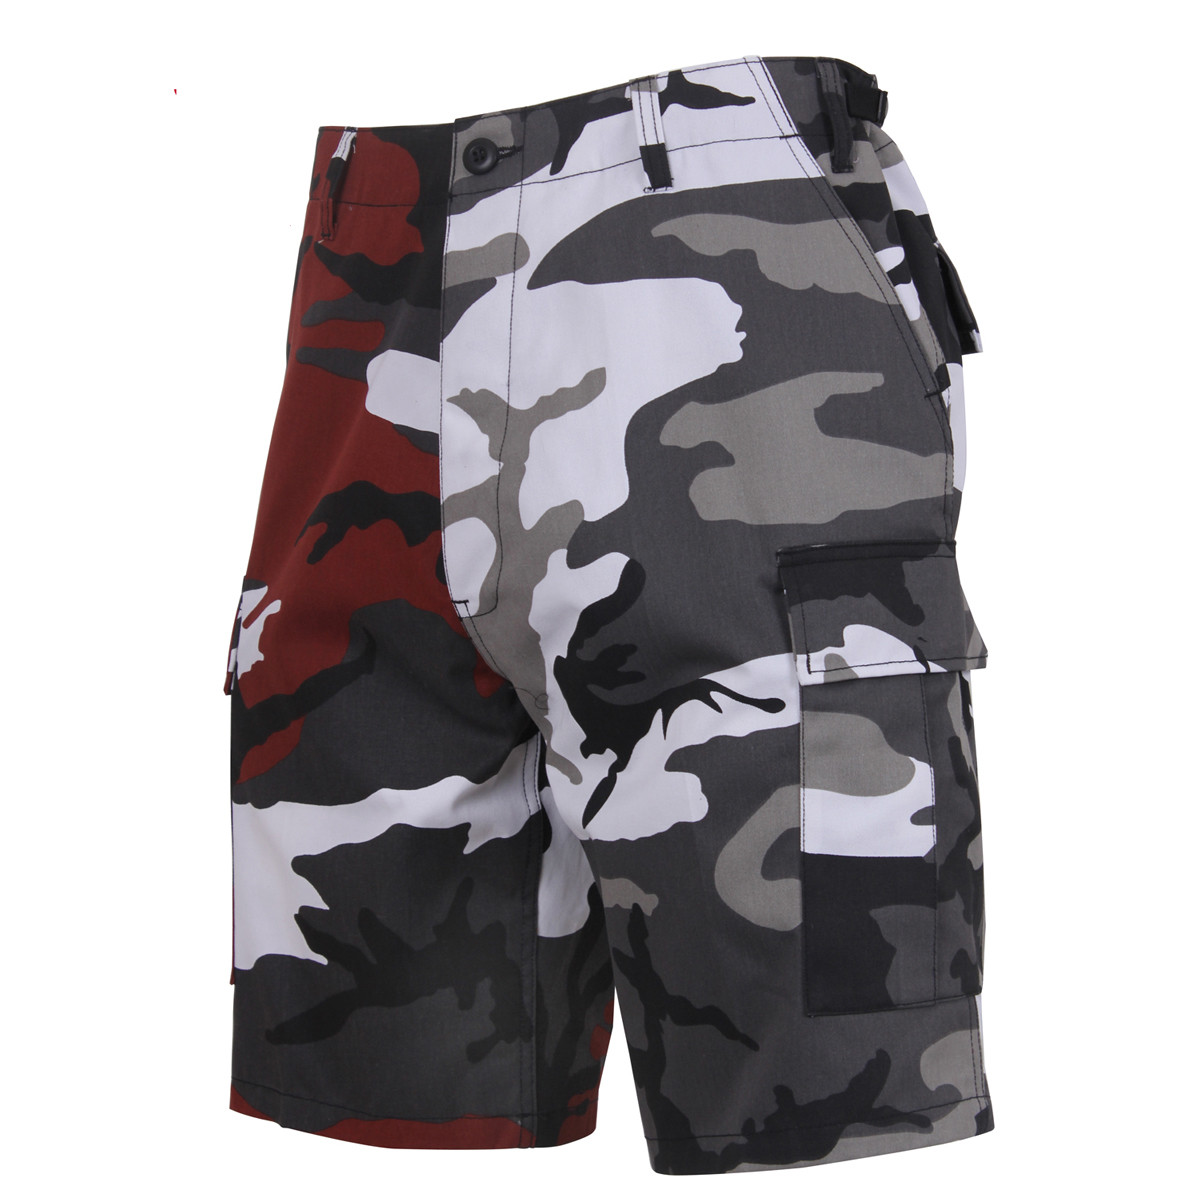 8d9ac8c223 Shop Rothco Two/Tone Camo Shorts - Fatigues Army Navy